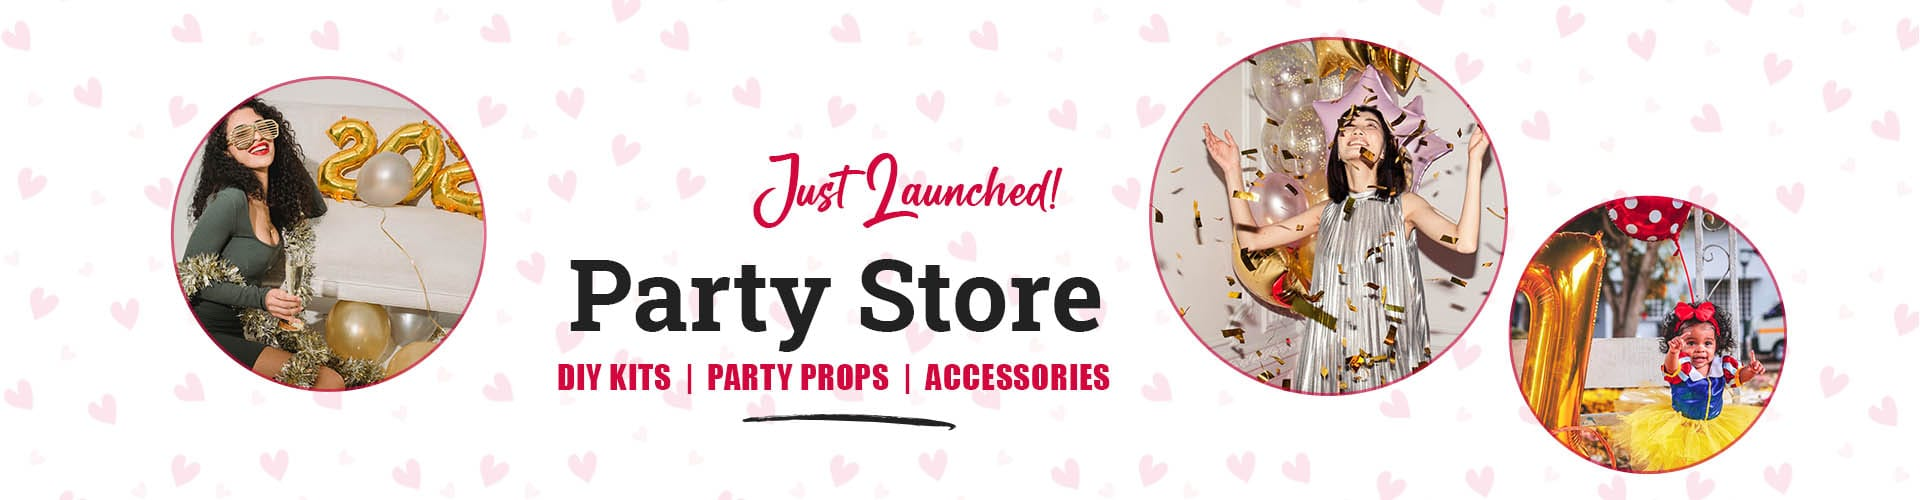 Party Store by CherishX for Birthday Decorations & Balloon Decorations DIY Kits across India